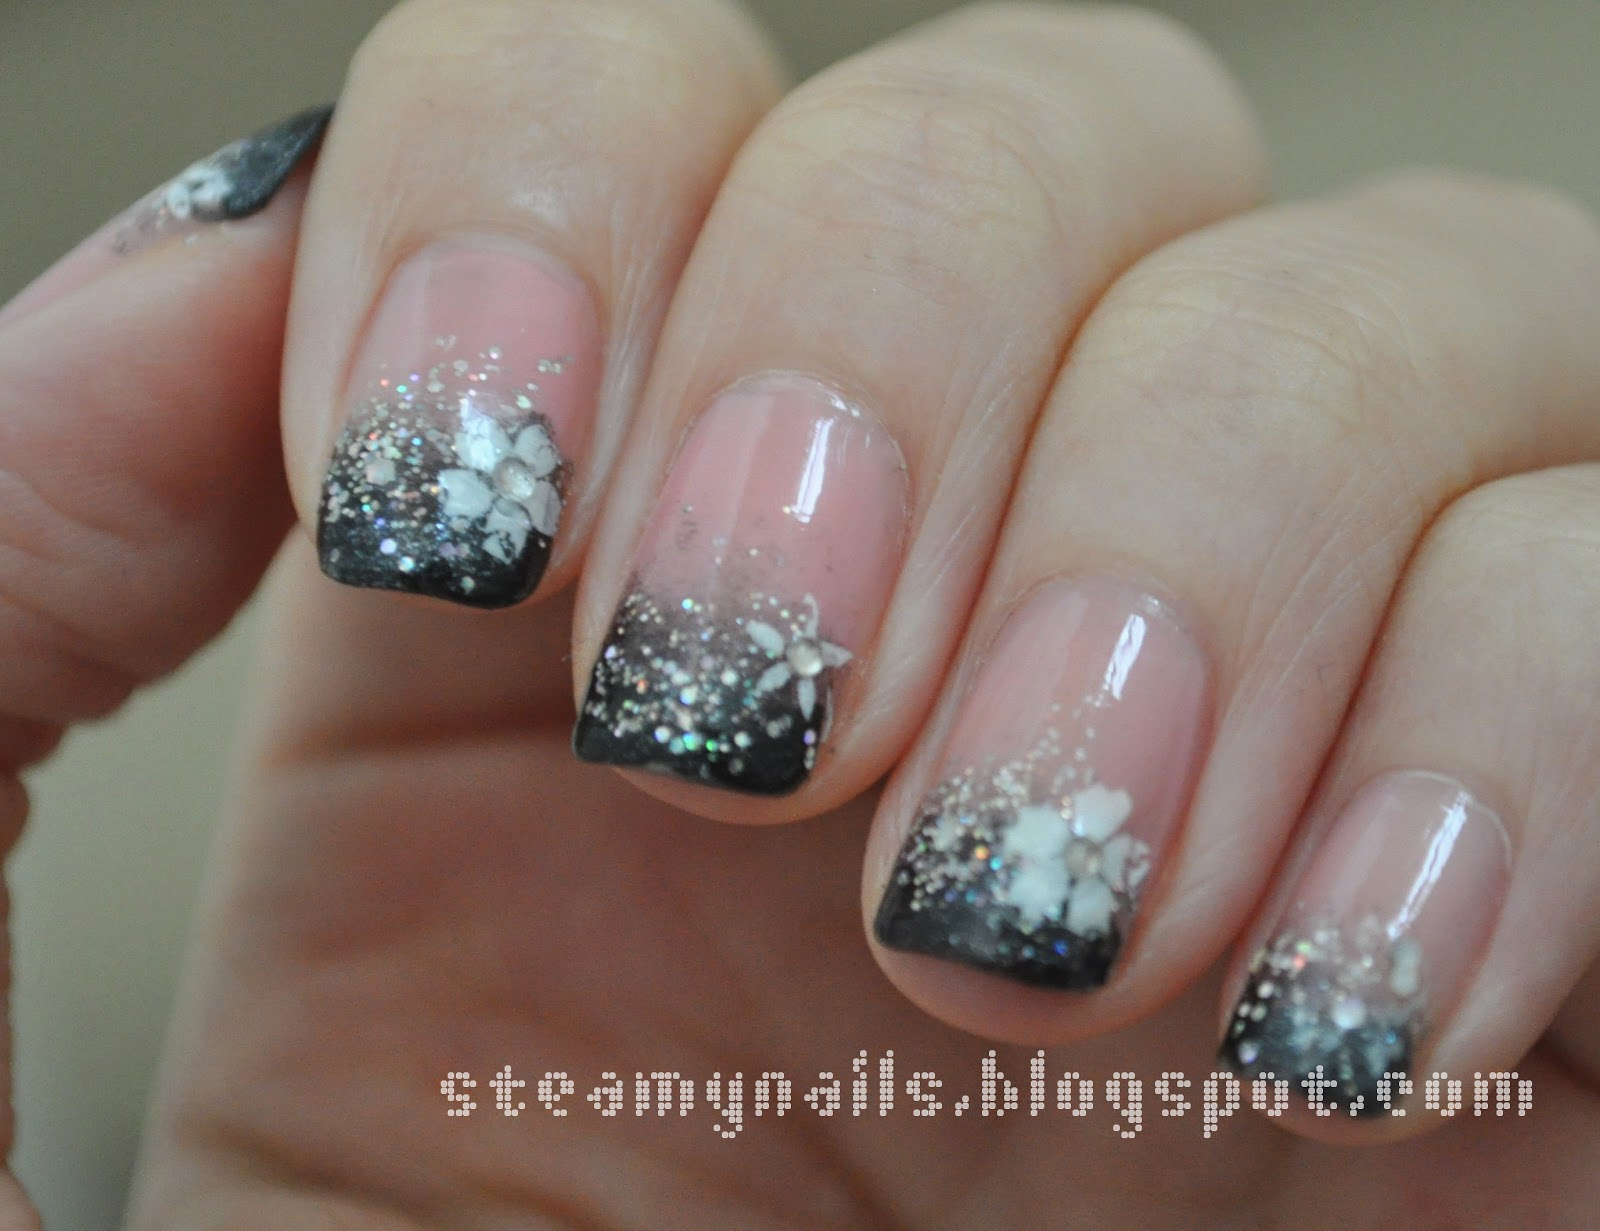 French Black nails with glitter best photo